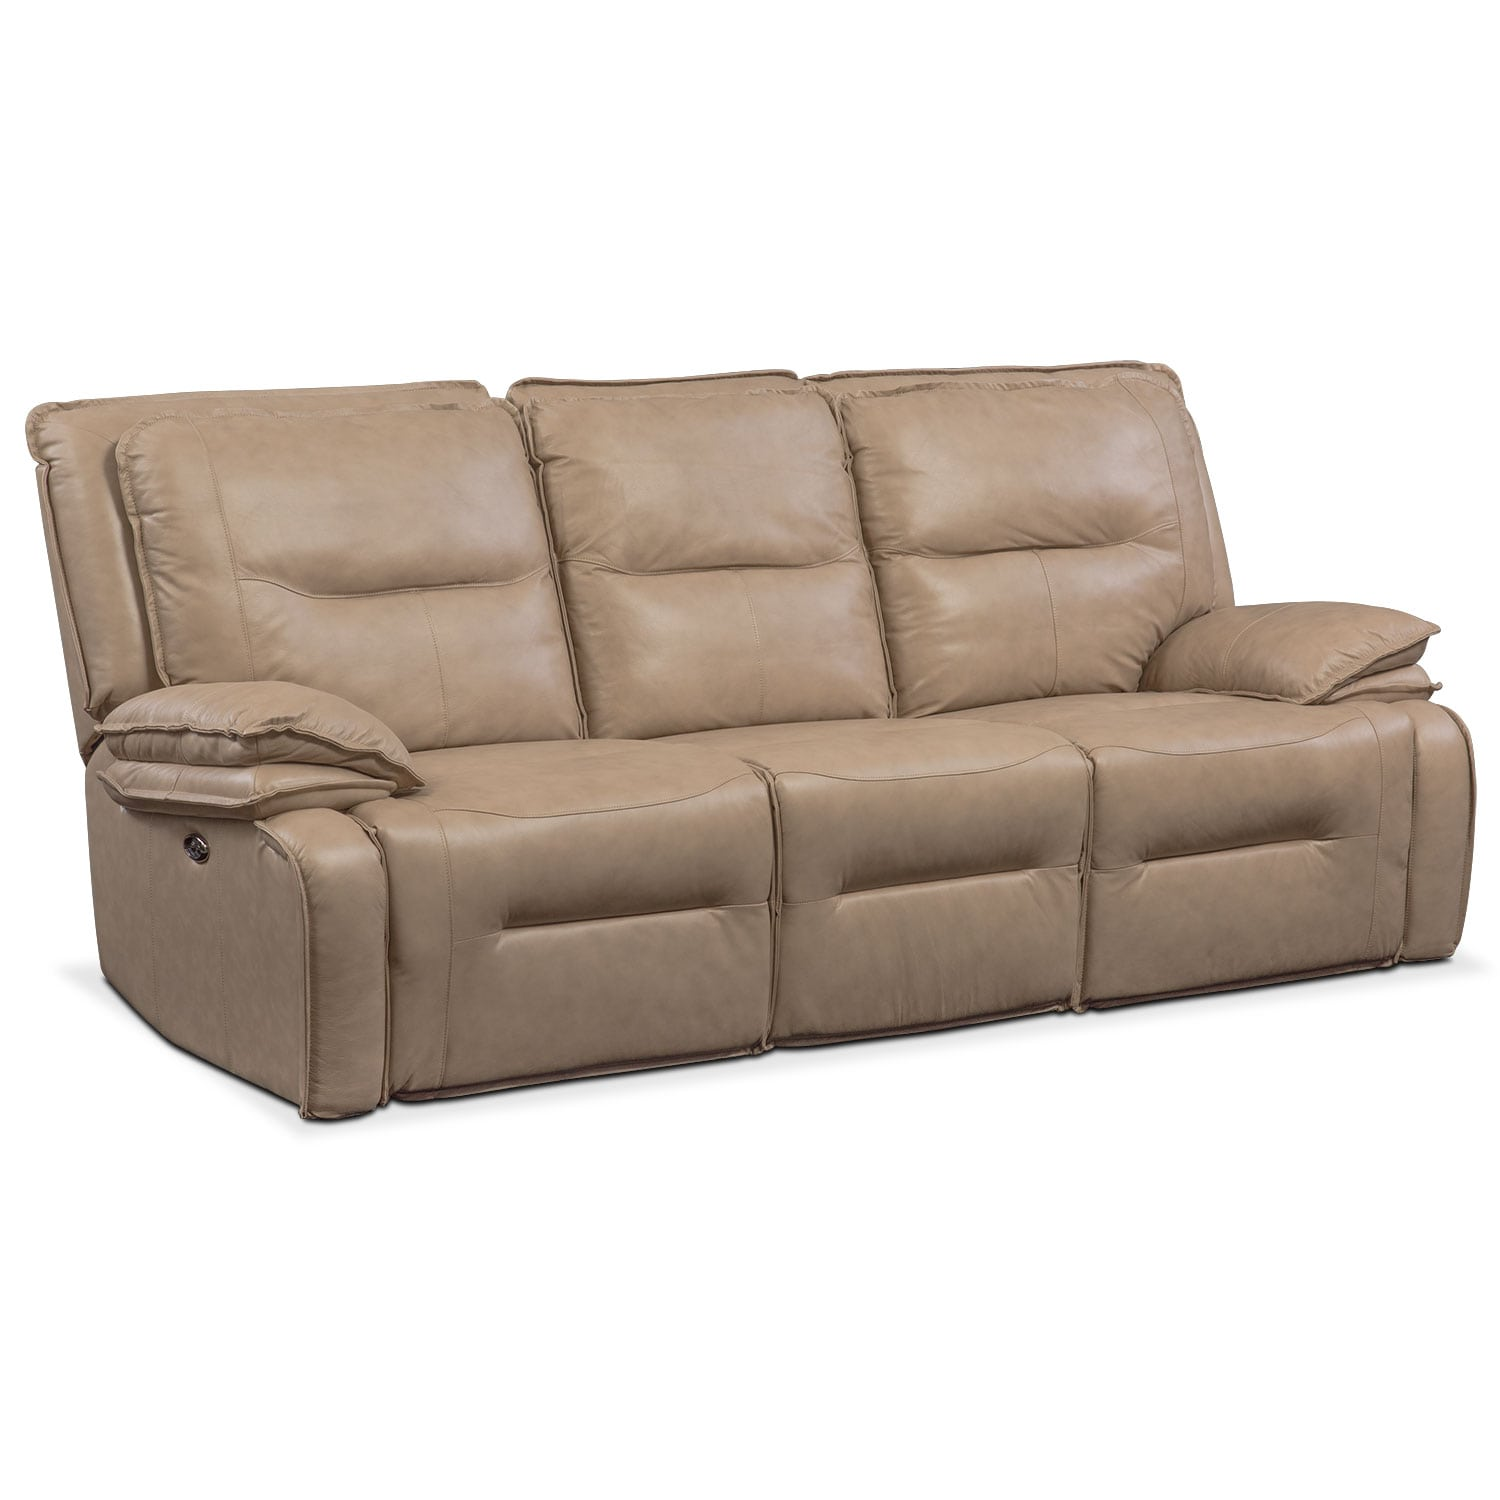 Nikki 3 Piece Power Reclining Sectional with 2 Recliners Taupe